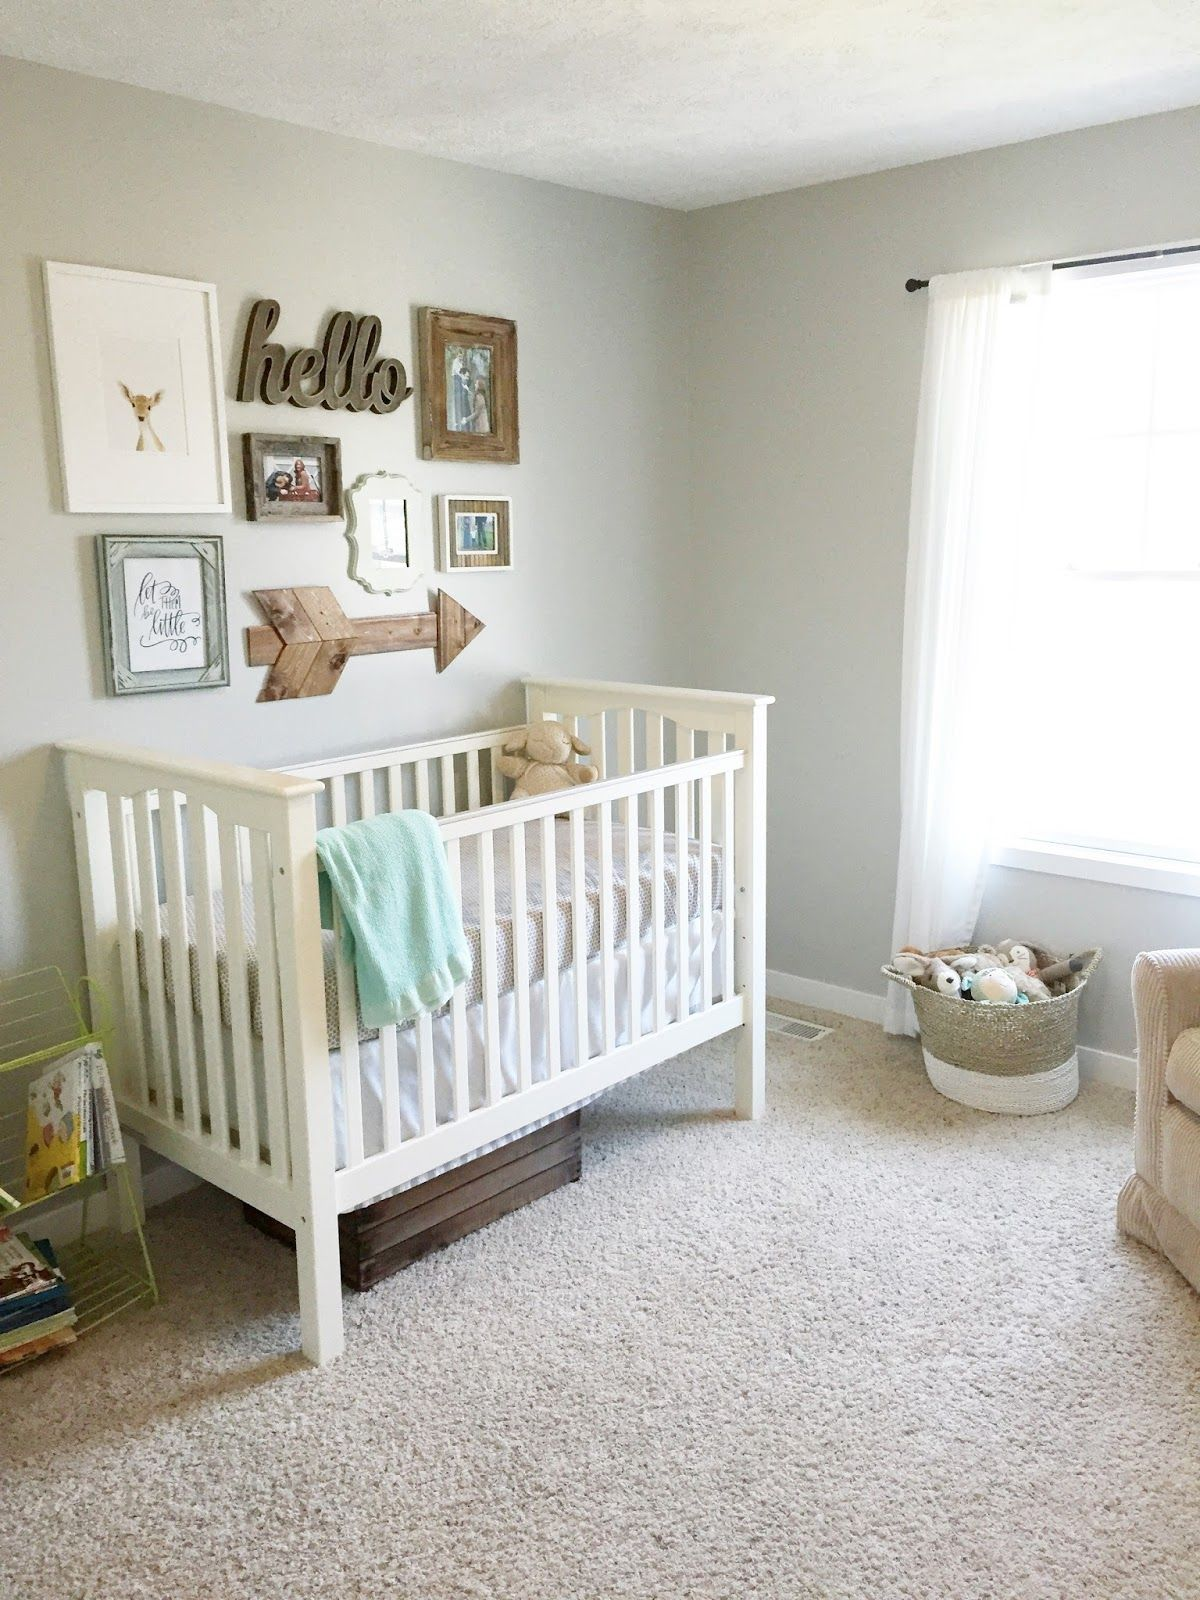 With all the options and nursery design